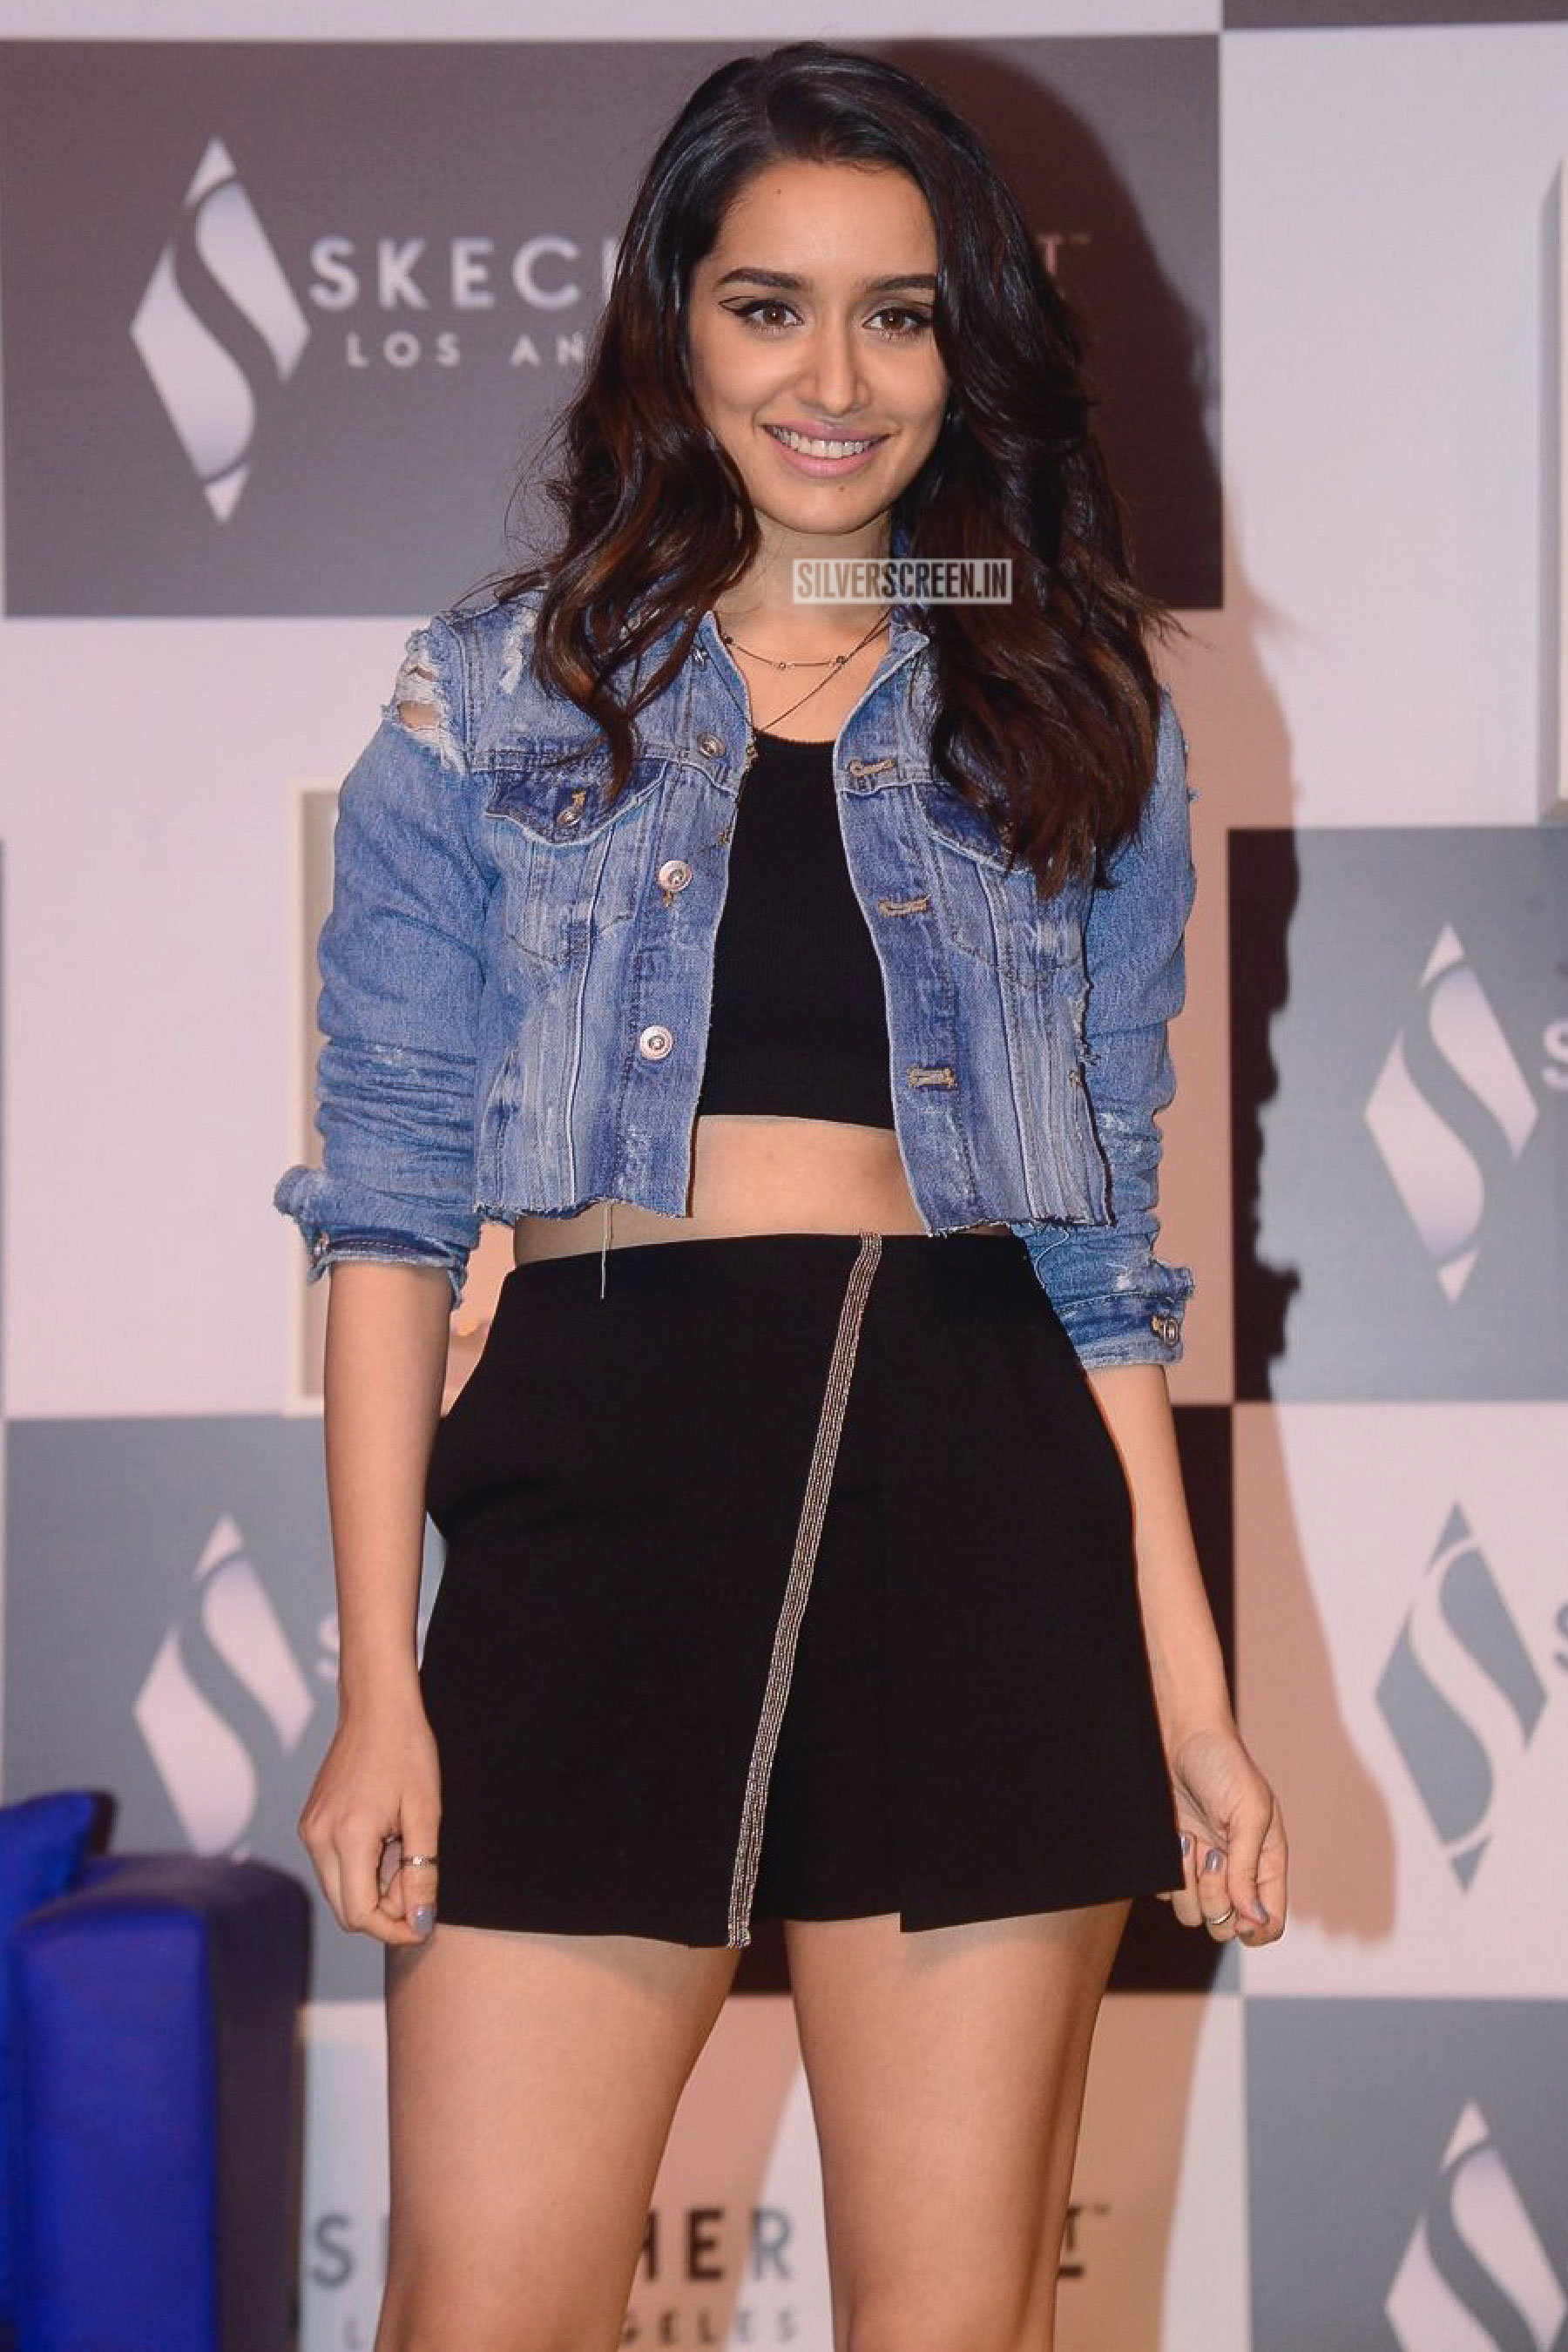 shraddha kapoor unveils new shoes collection silverscreen in